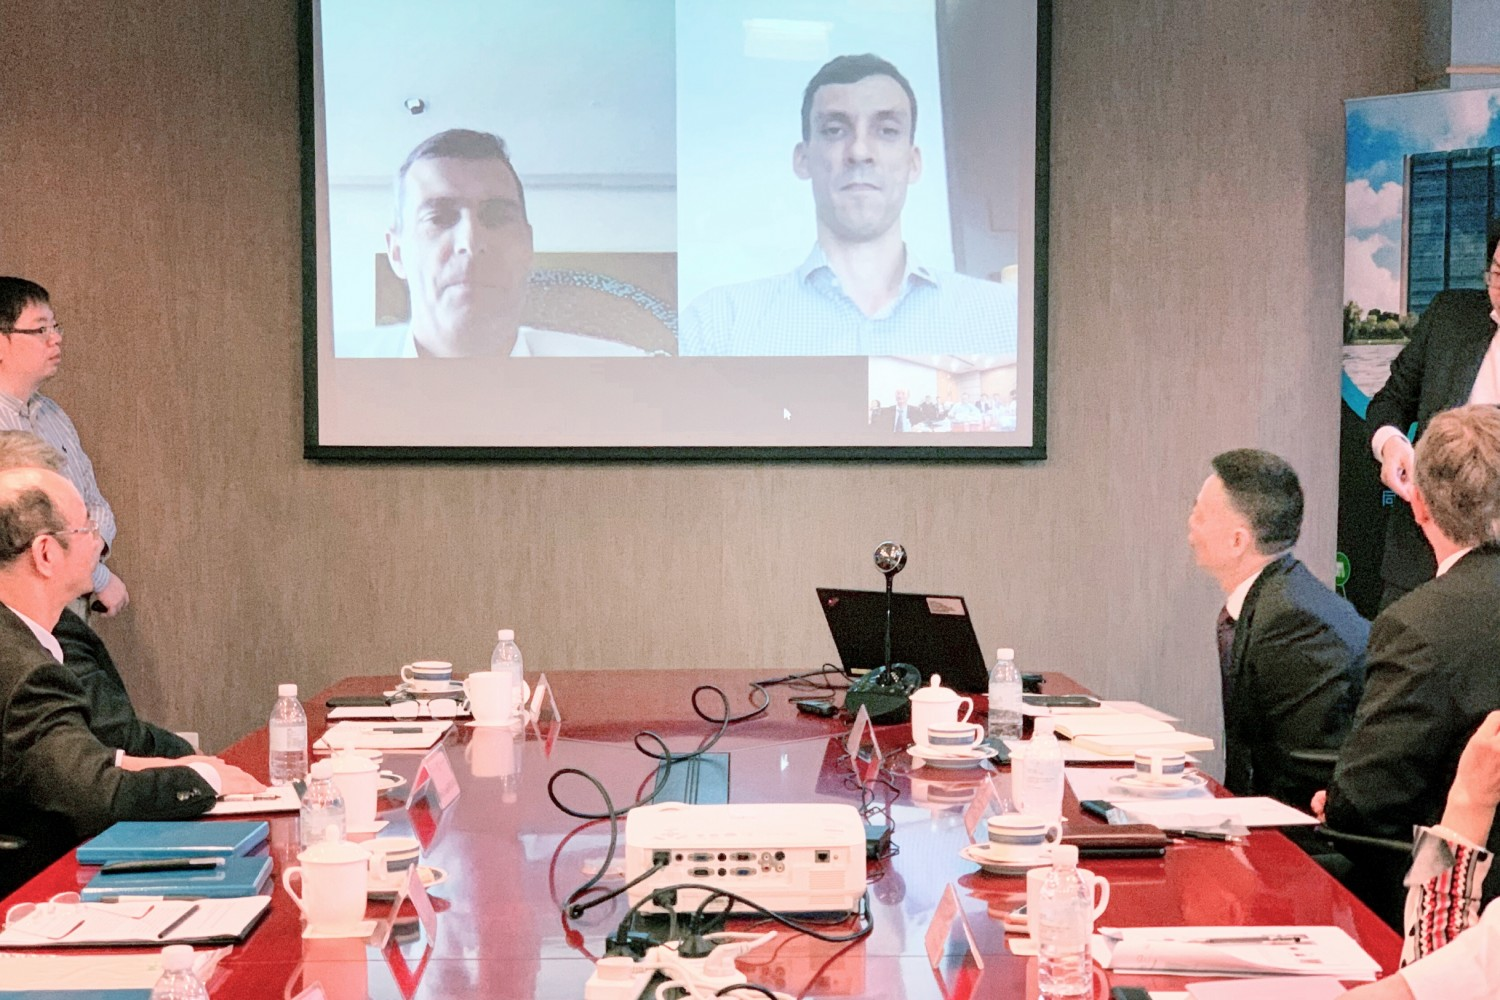 20200906-Covestro-Tongji-Innovation-Academy-Digital-Video-Conferencing